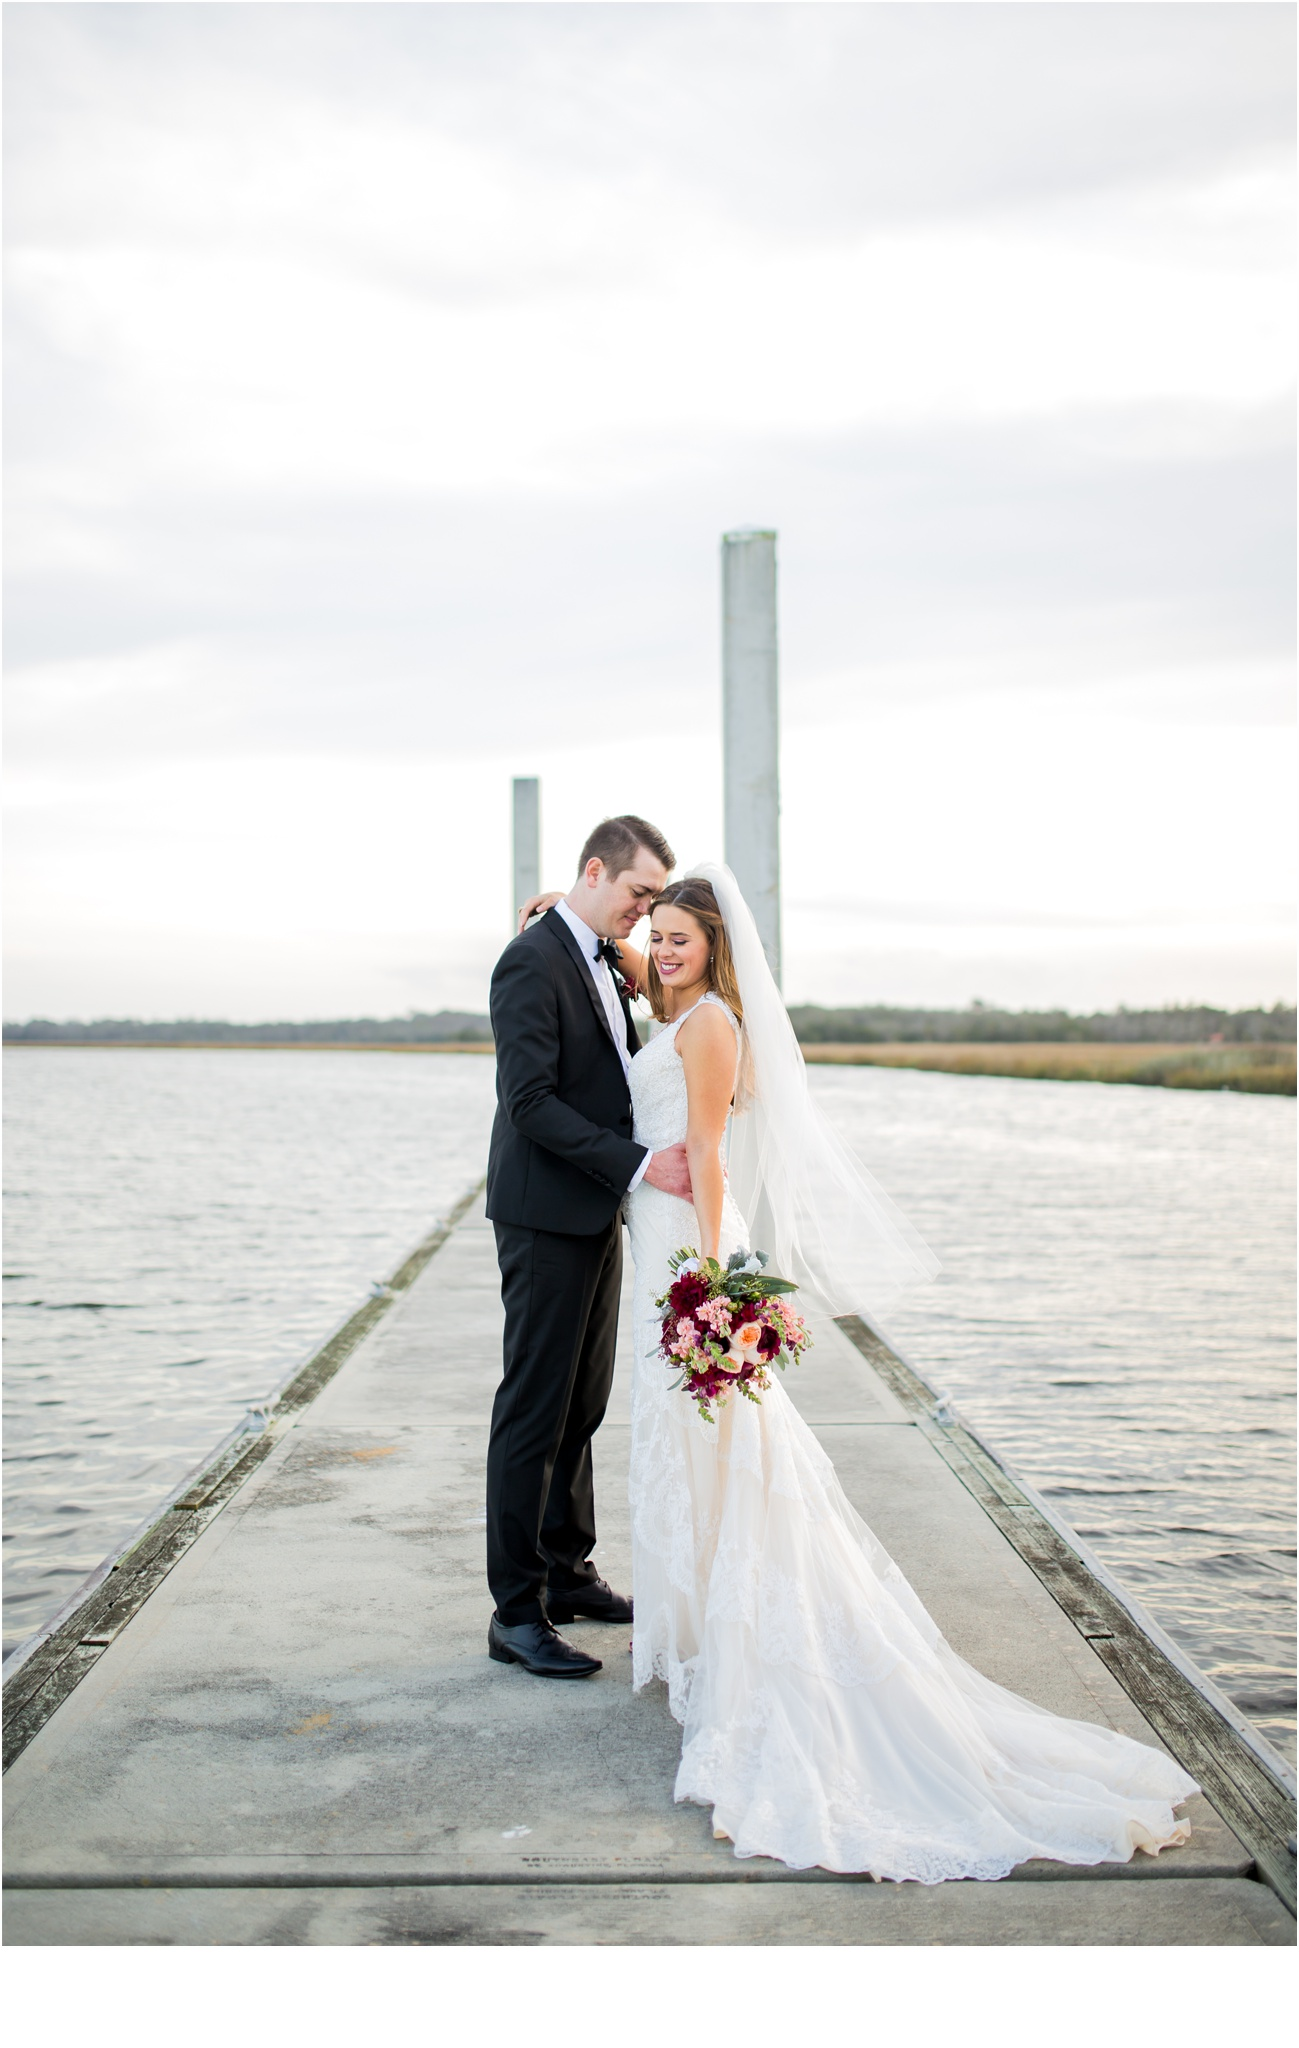 Rainey_Gregg_Photography_St._Simons_Island_Georgia_California_Wedding_Portrait_Photography_0874.jpg